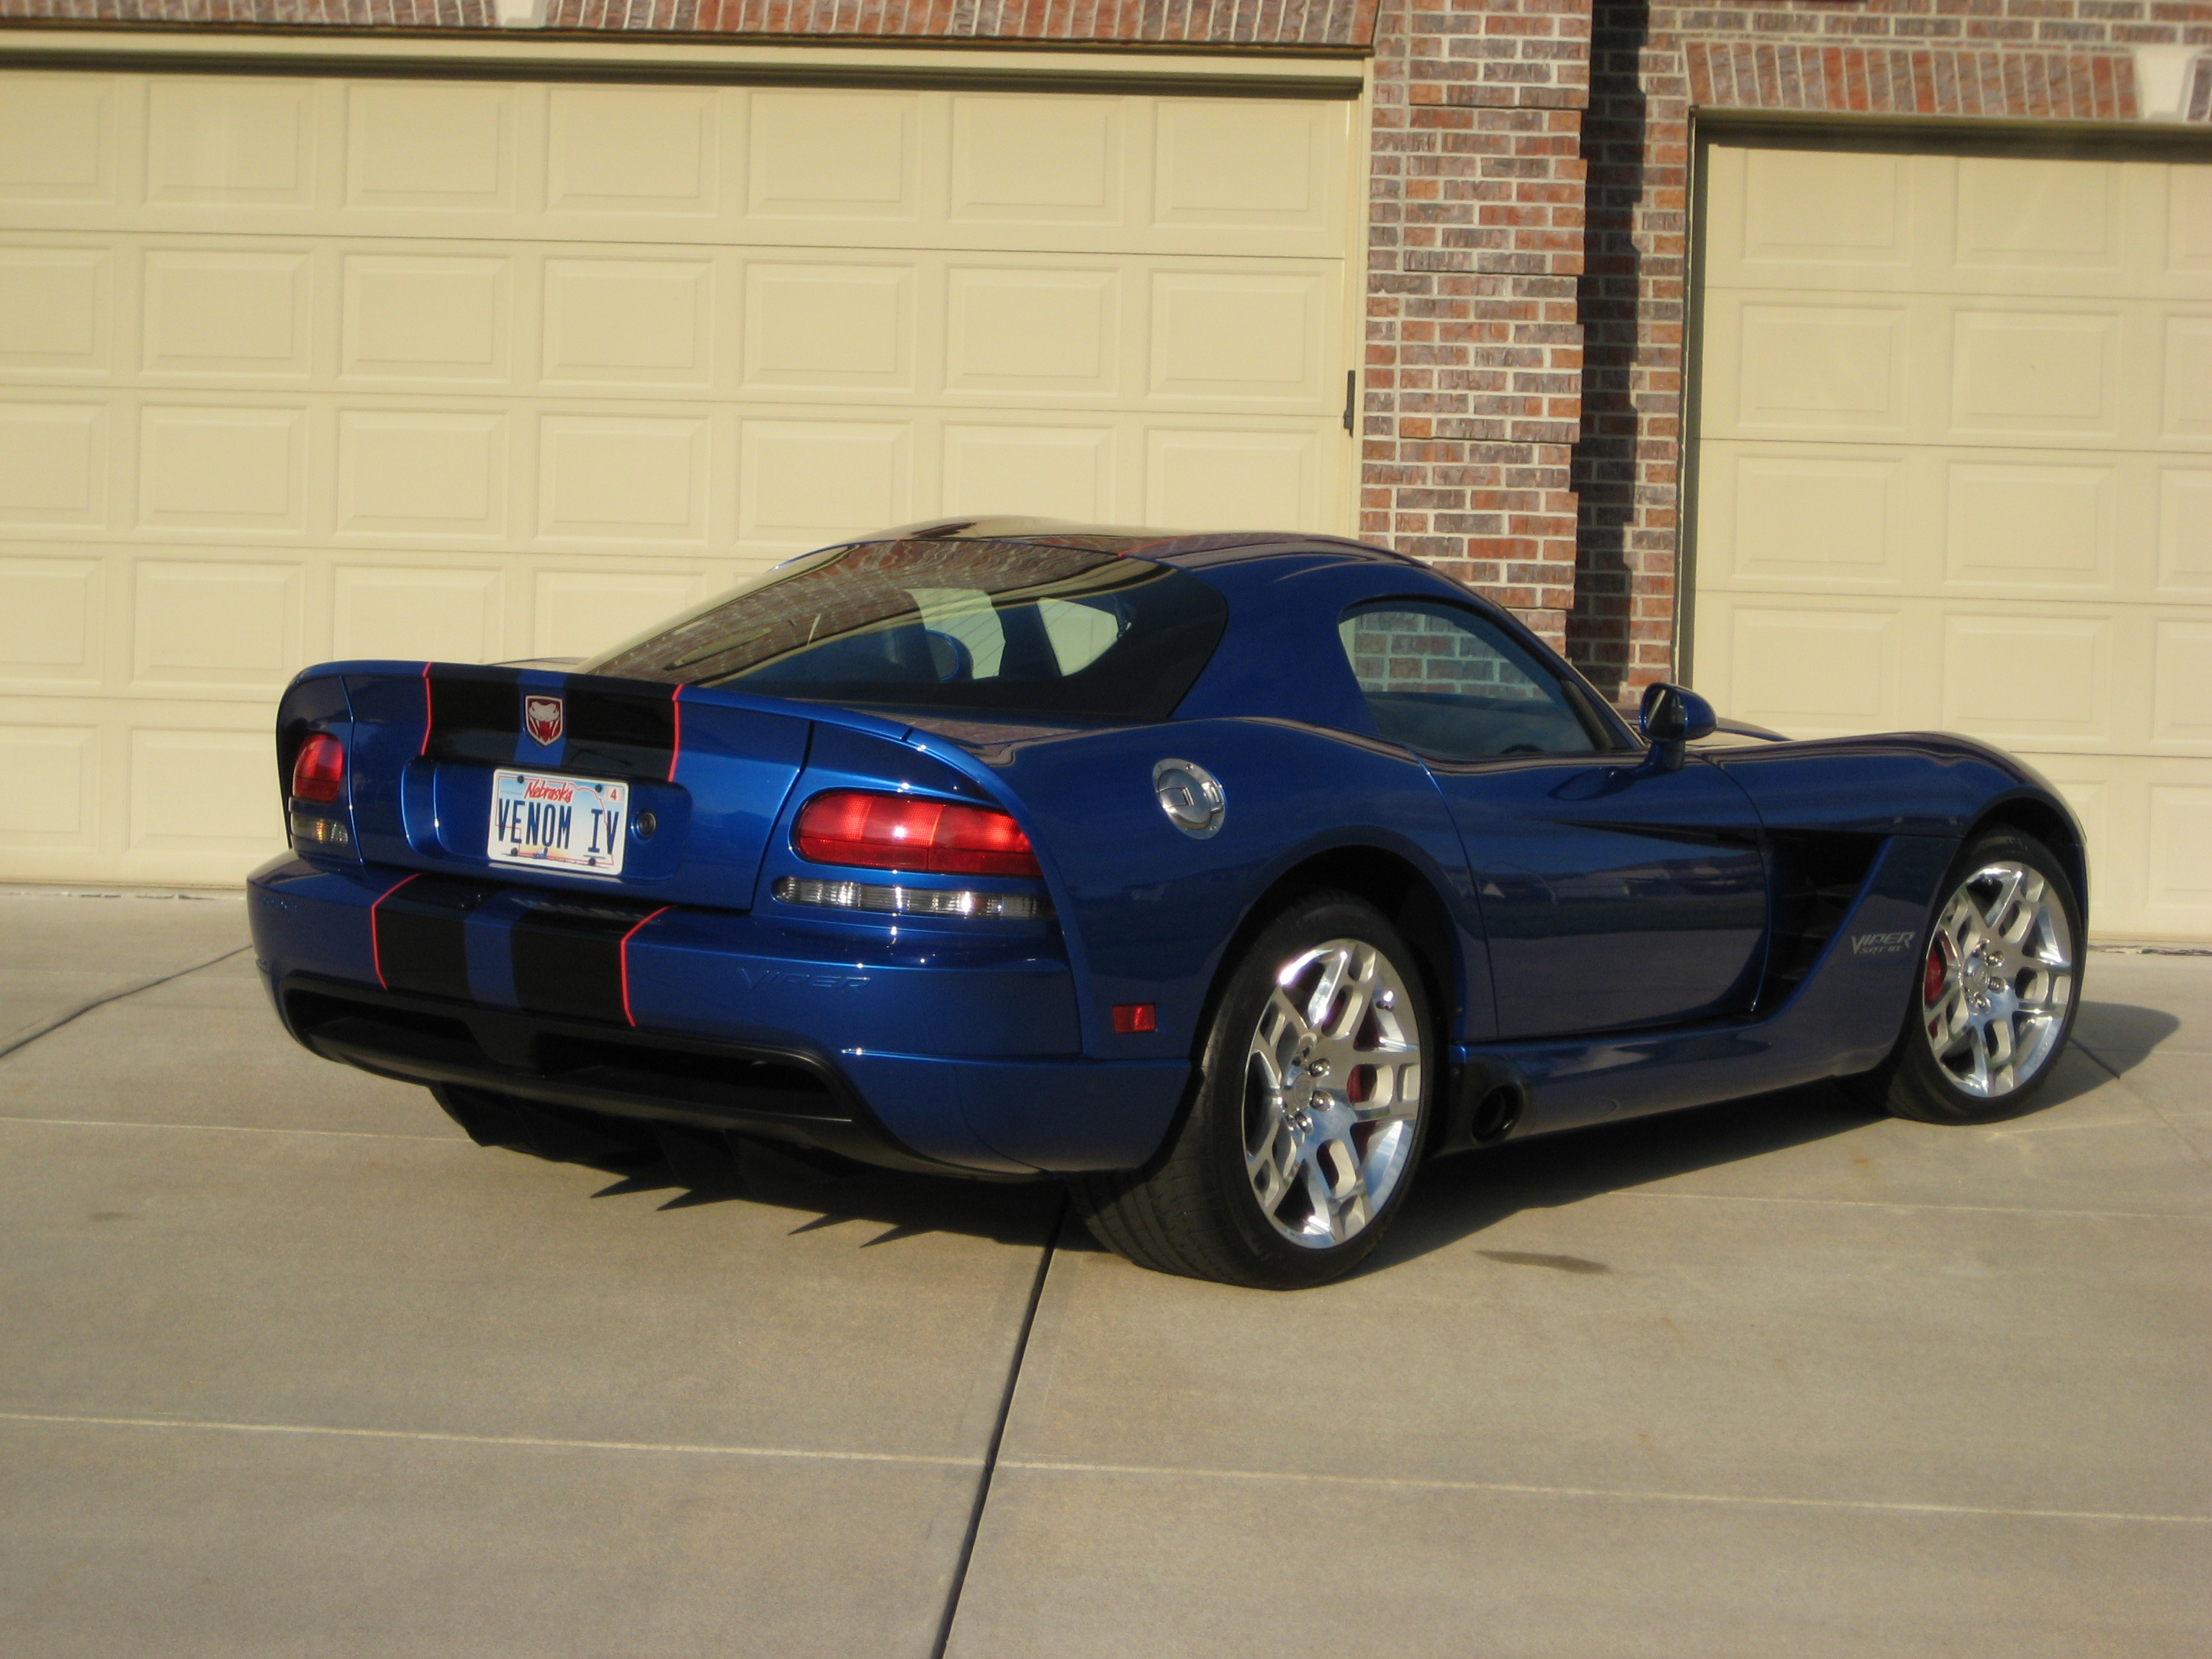 The Blue Thread. - Page 3 - Viper Alley - Dodge Viper ... - photo#24